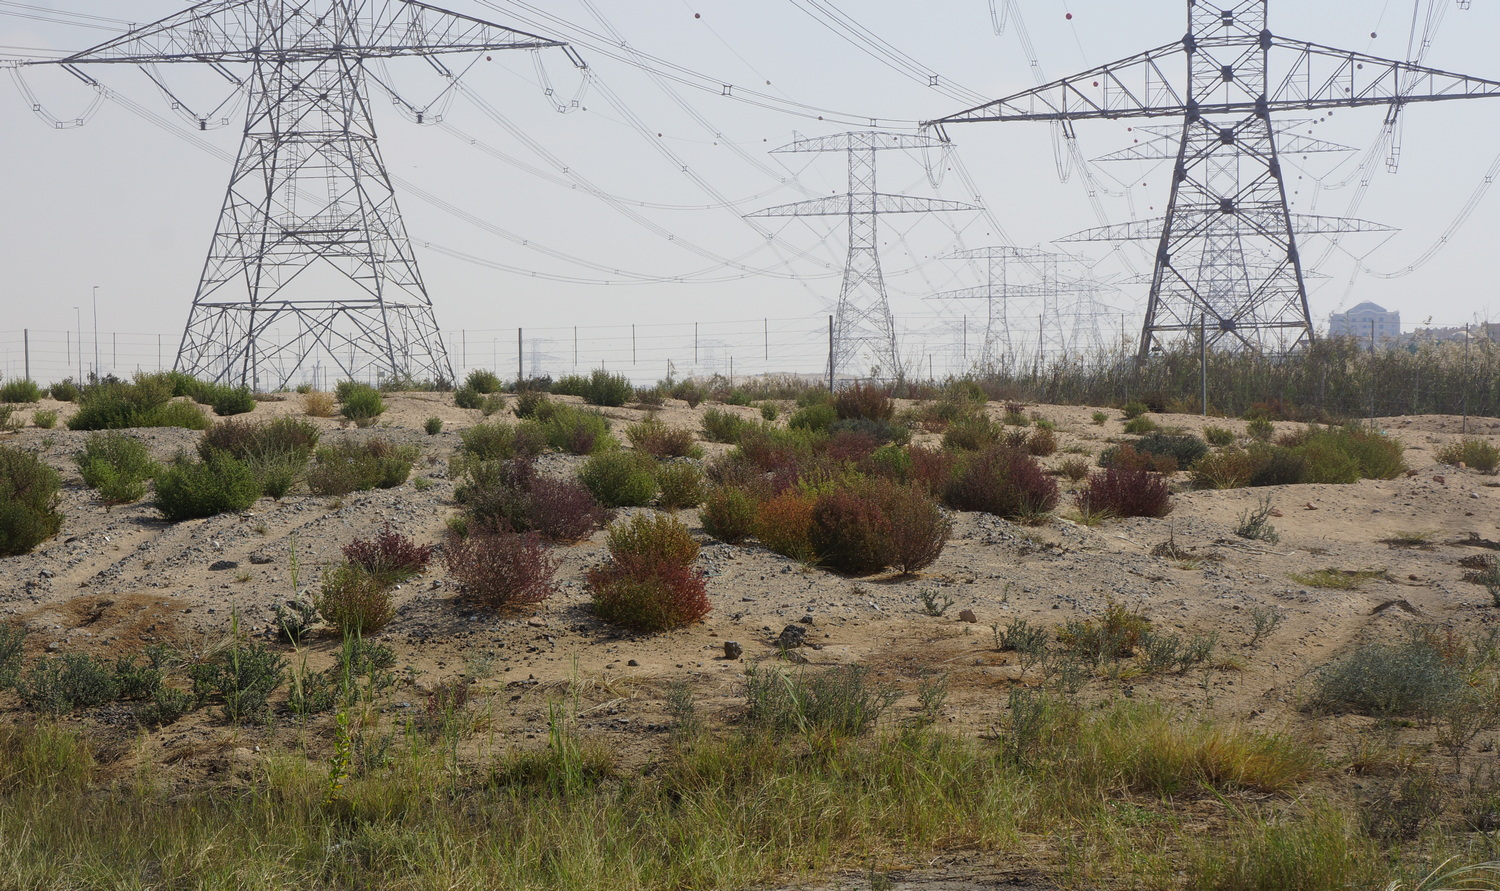 Creating non-irrigated climate-adapted landscapes in the Middle East